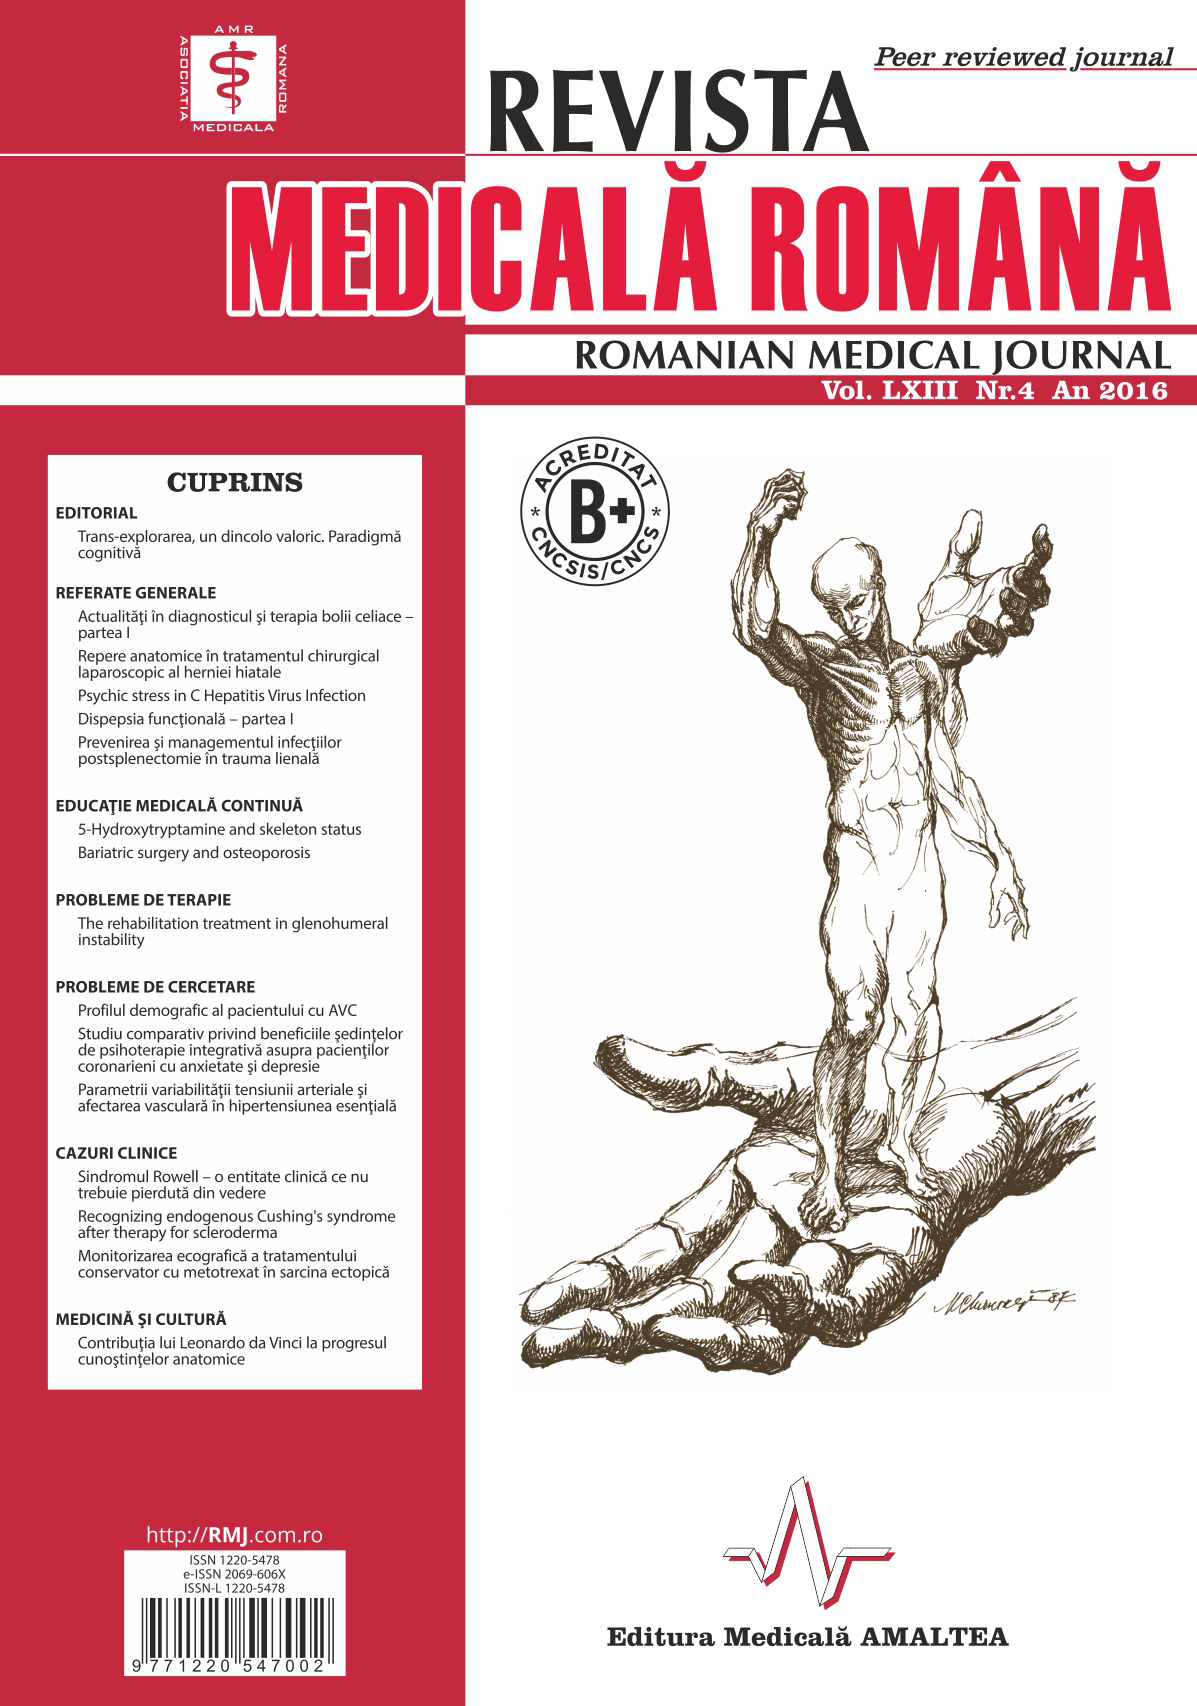 REVISTA MEDICALA ROMANA - Romanian Medical Journal, Vol. LXIII, Nr. 4, An 2016